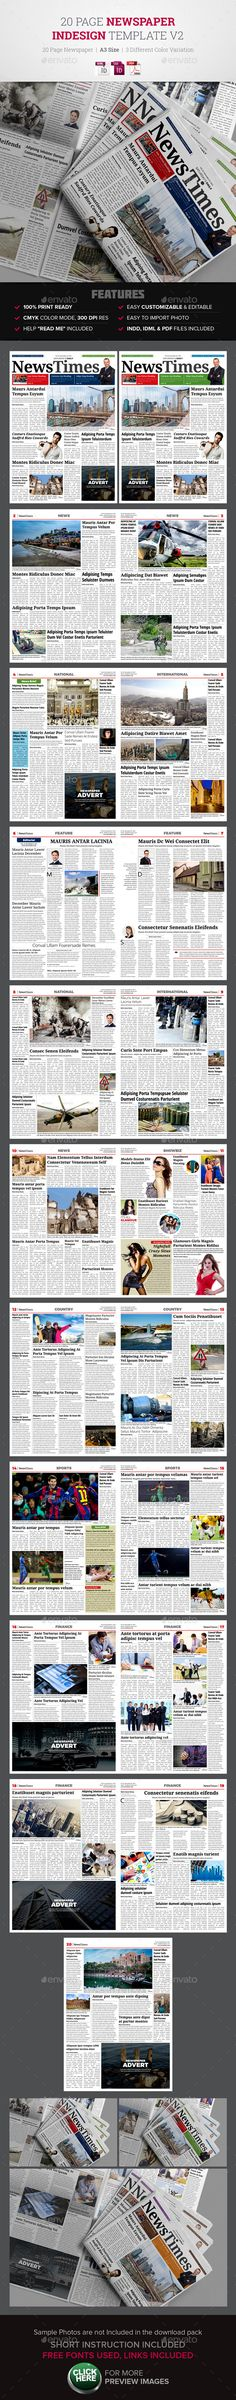 Newspaper Template   Tabloid   Pinterest   Newspaper  Template and     20 Page Newspaper Design v2